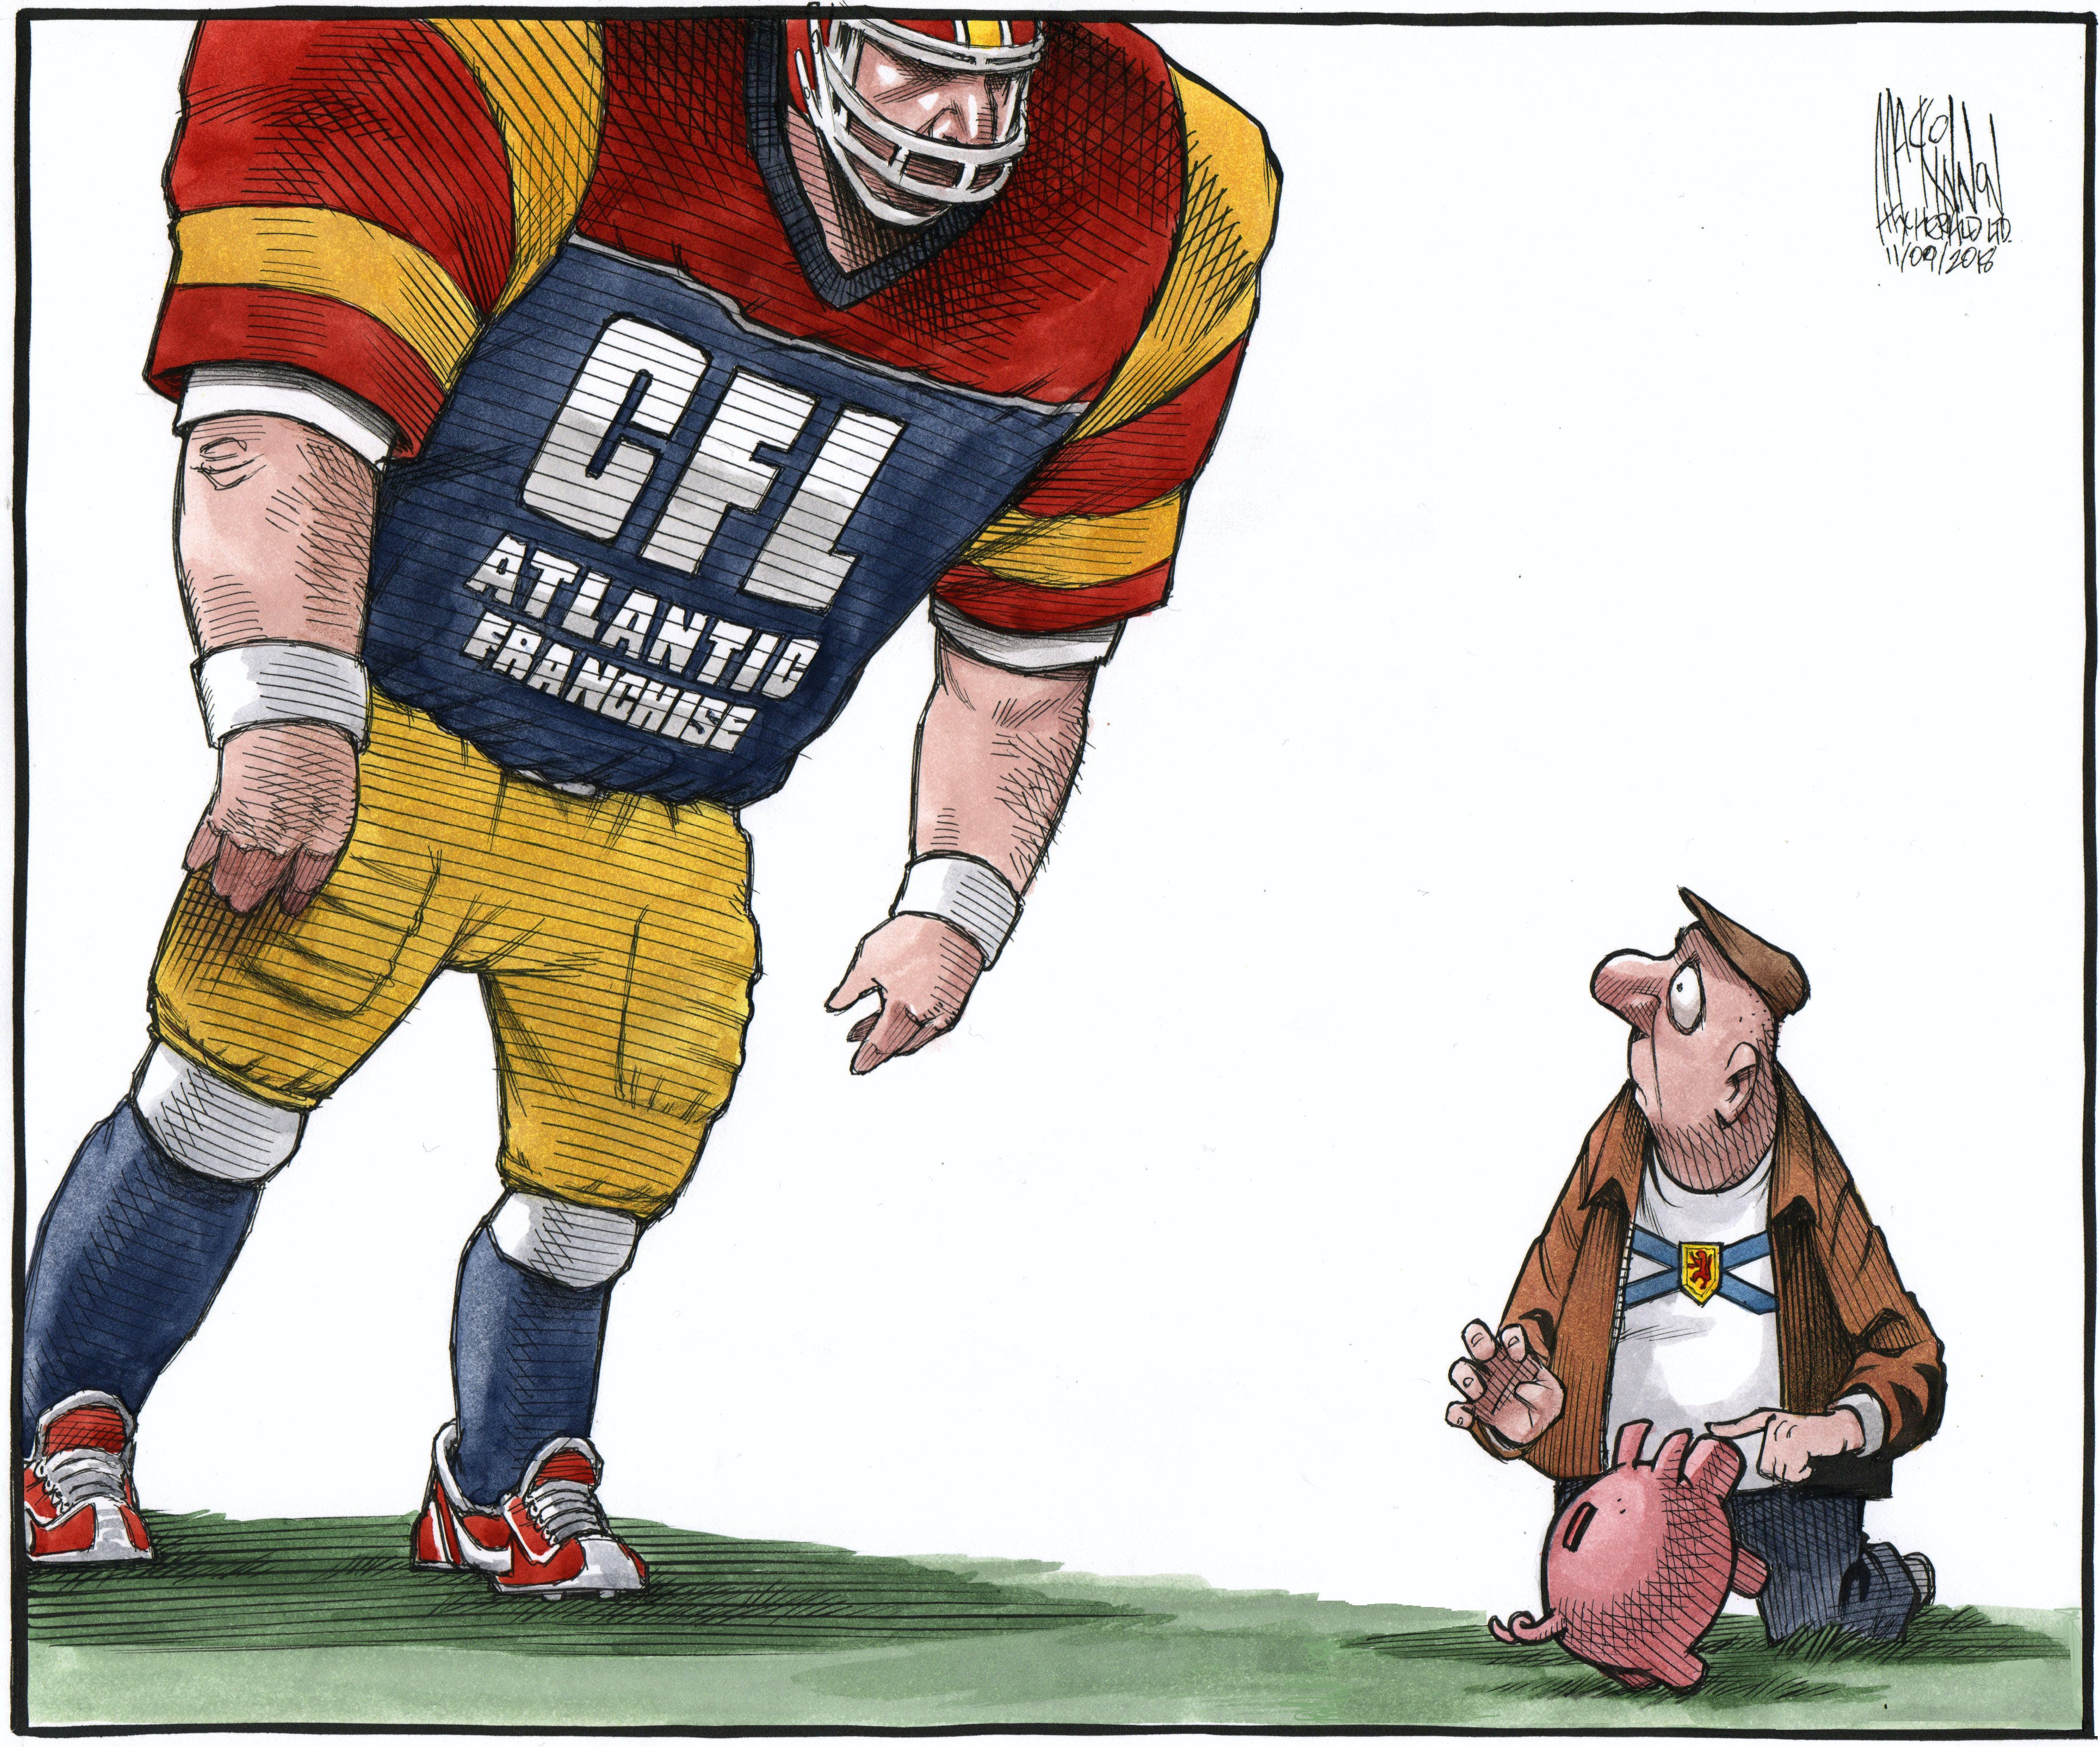 Cartoonist Bruce MacKinnon's take on the proposed stadium for HRM, first published on Nov. 10, 2018.